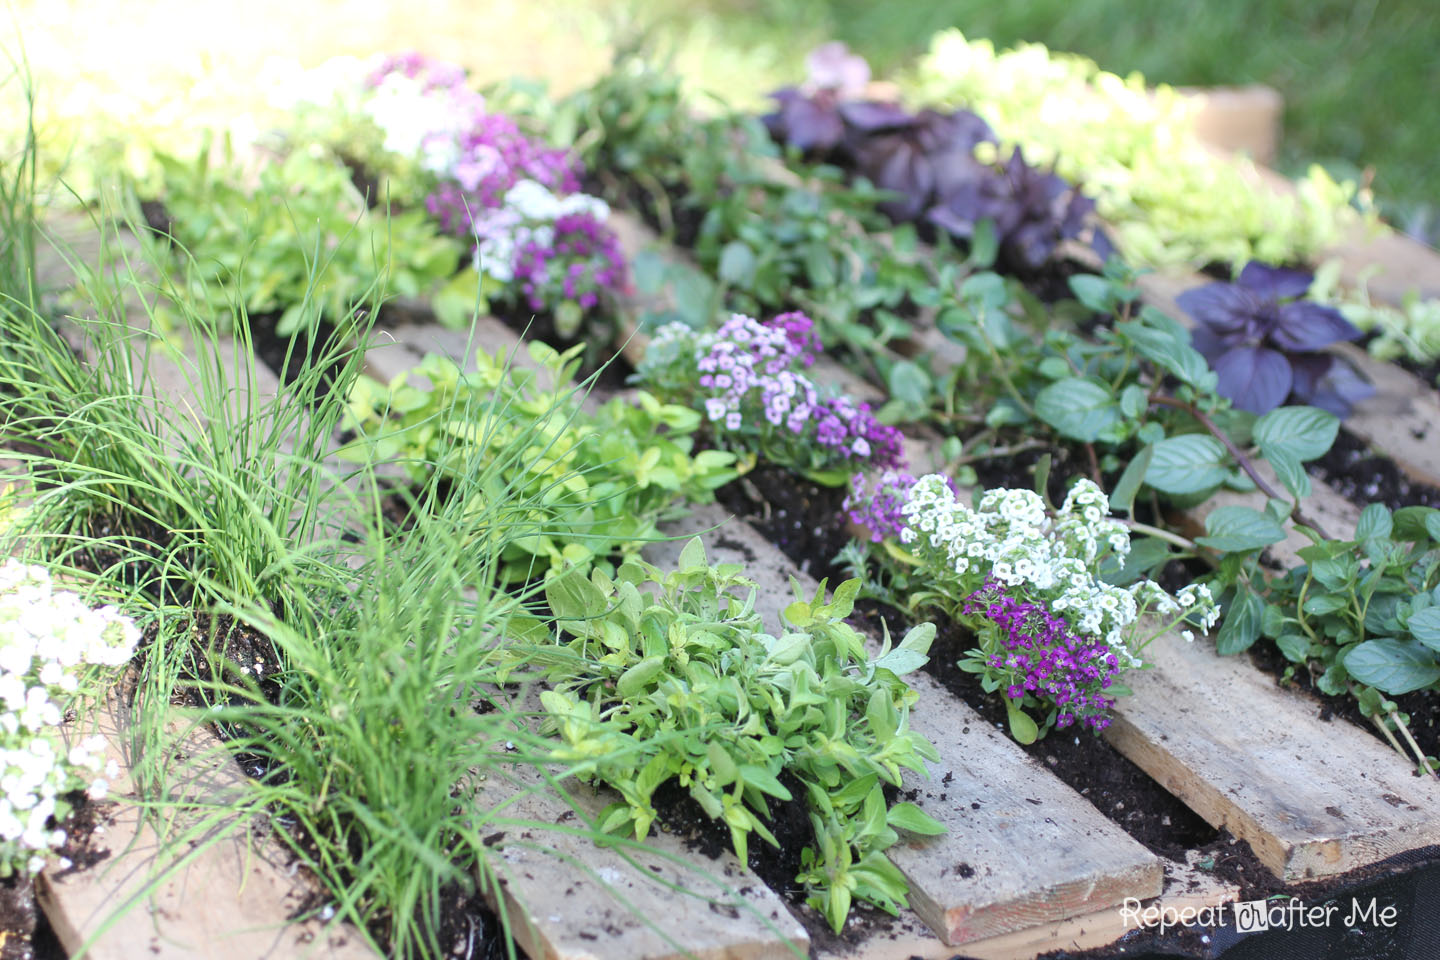 Wooden Pallet Herb Garden - Repeat Crafter Me